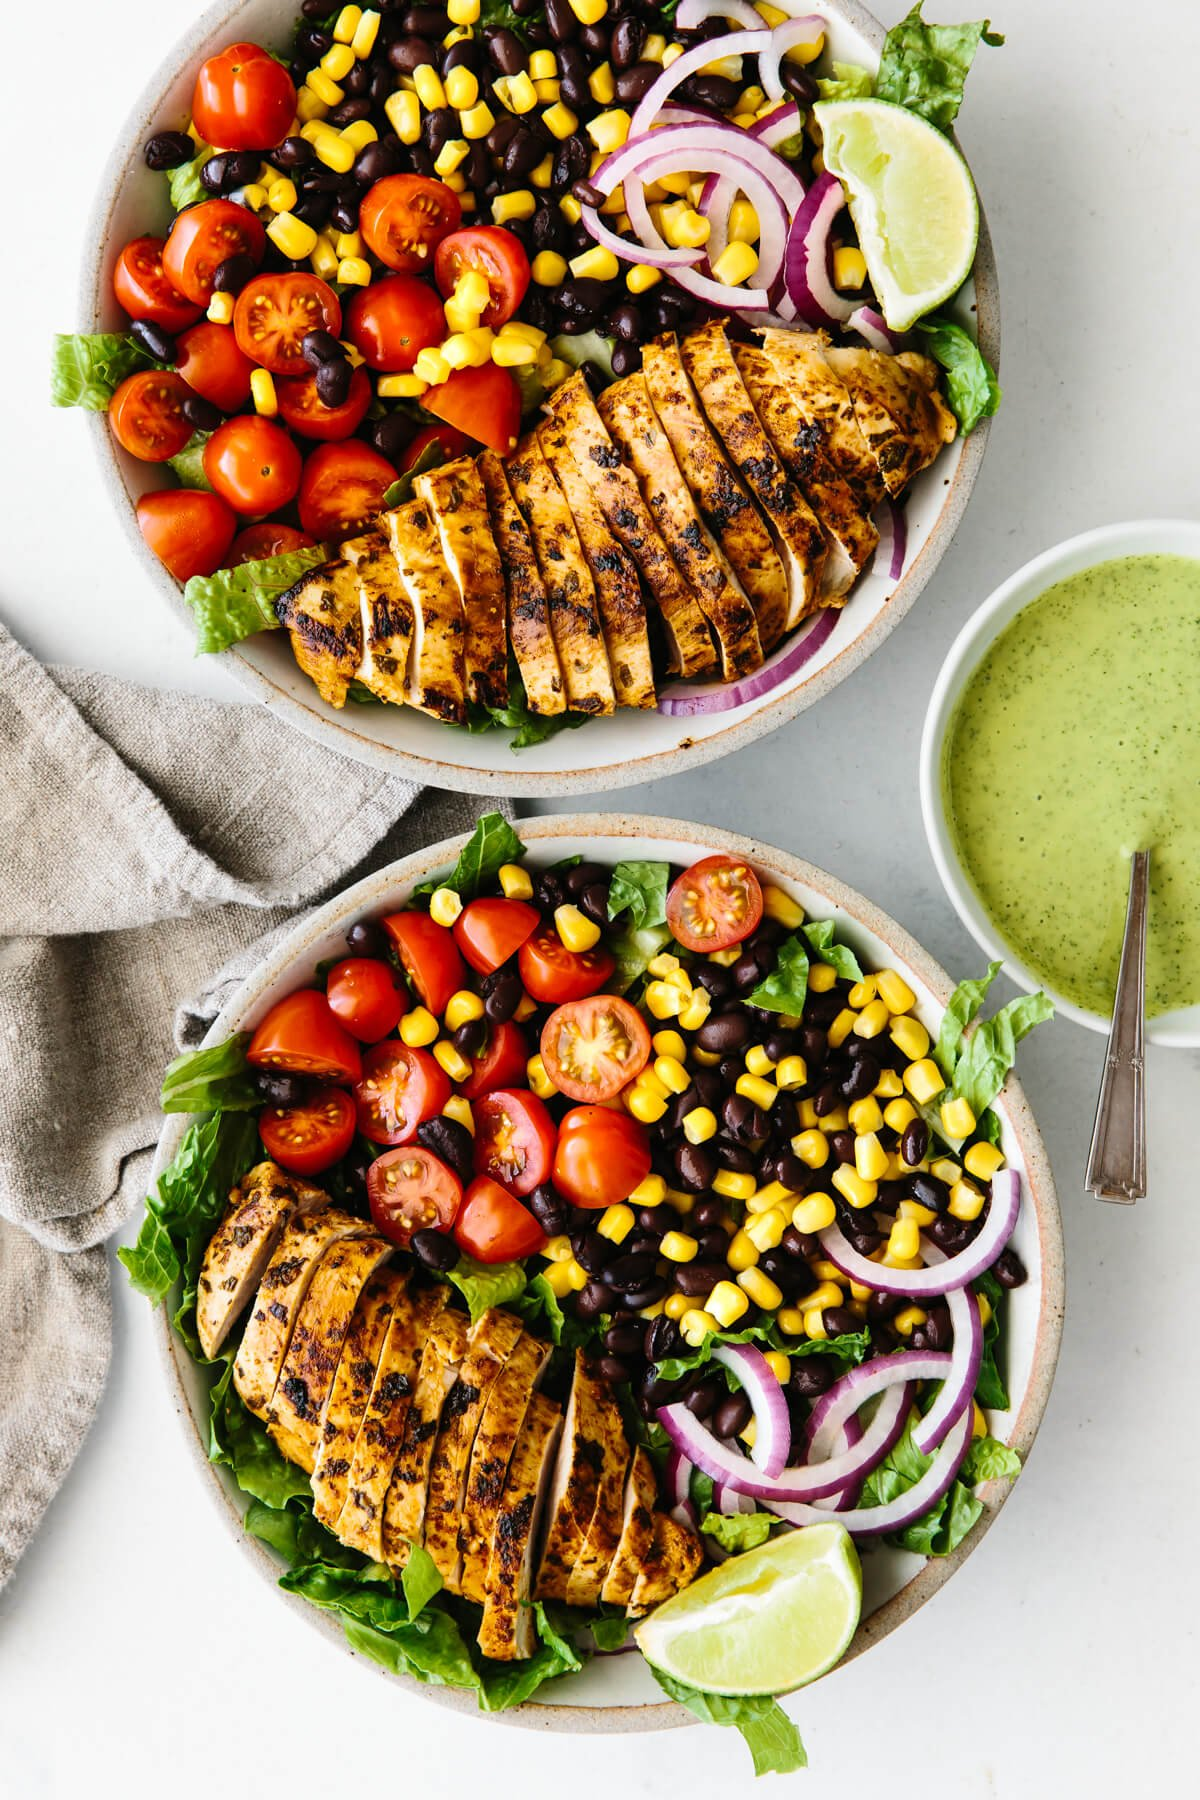 Sliced cilantro lime chicken and southwest salad ingredients in two bowls.